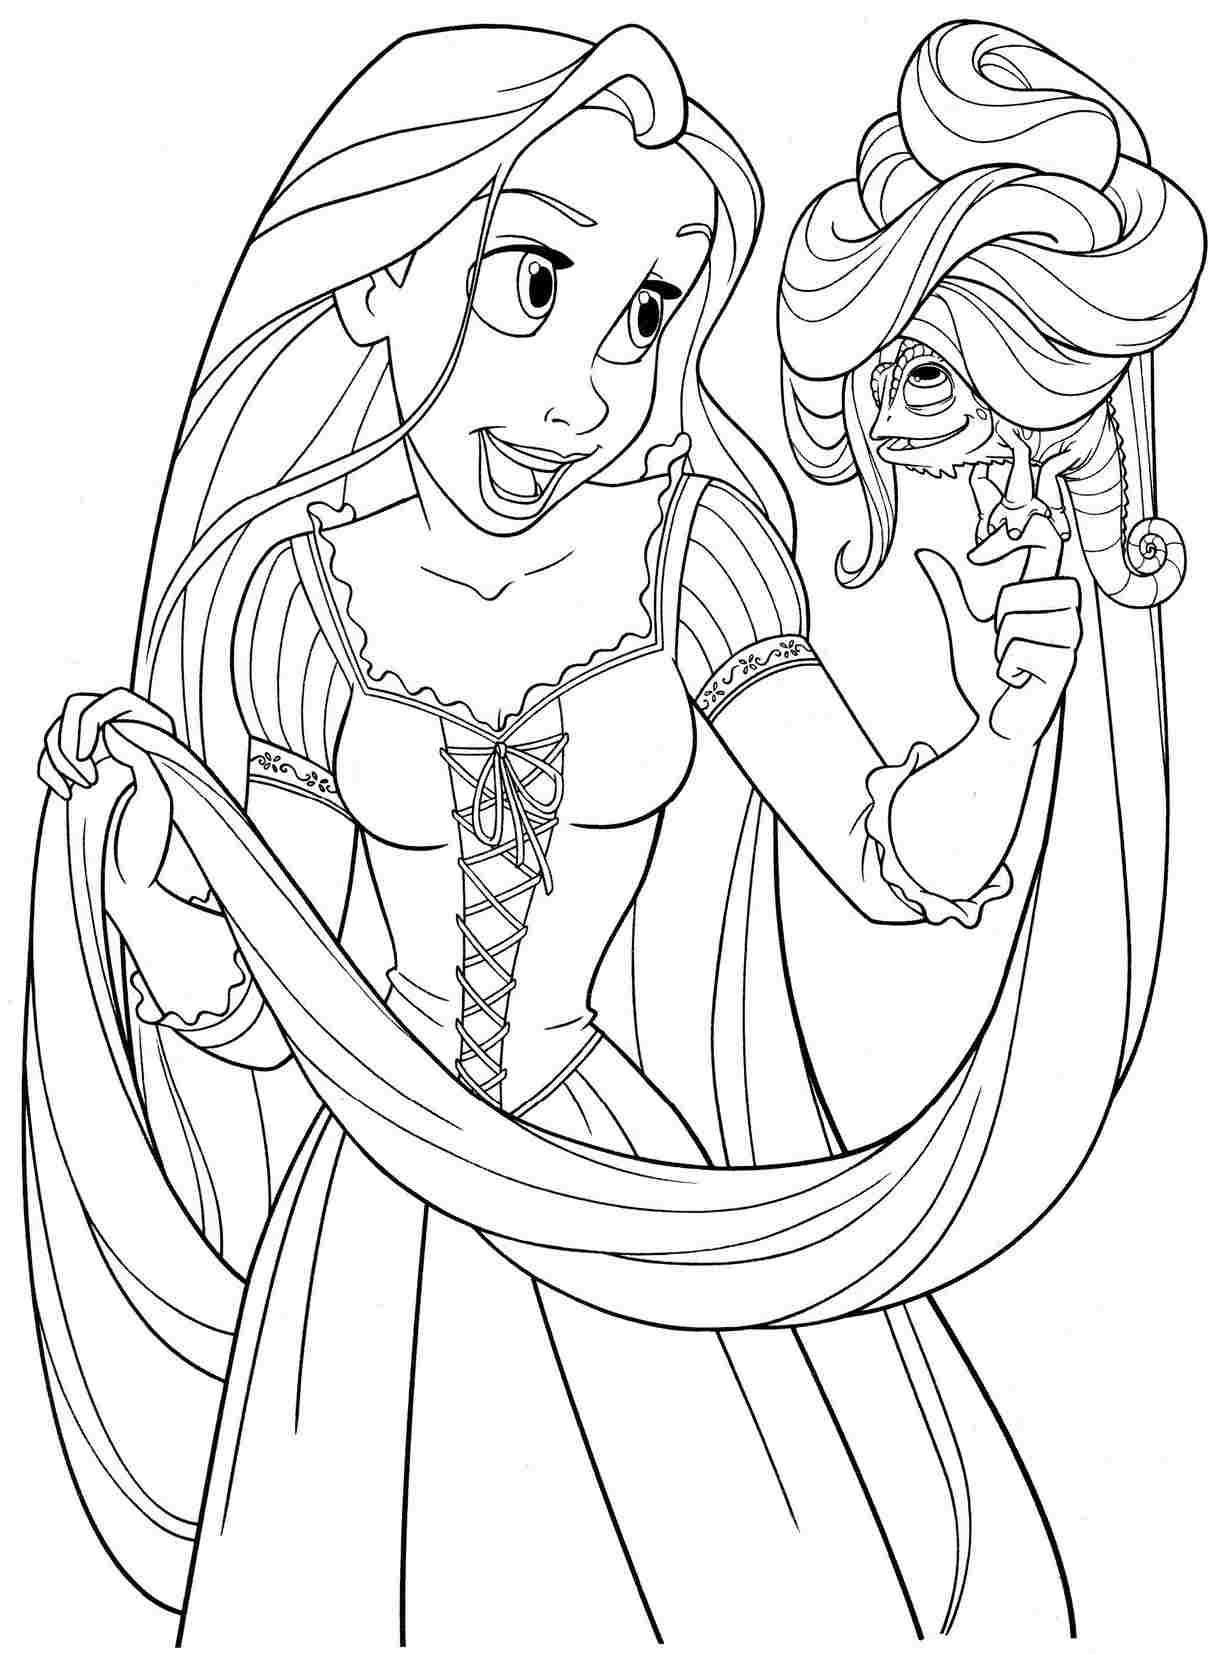 1228x1654 Rapunzel Printable Coloring Pages Free For General Tangled To